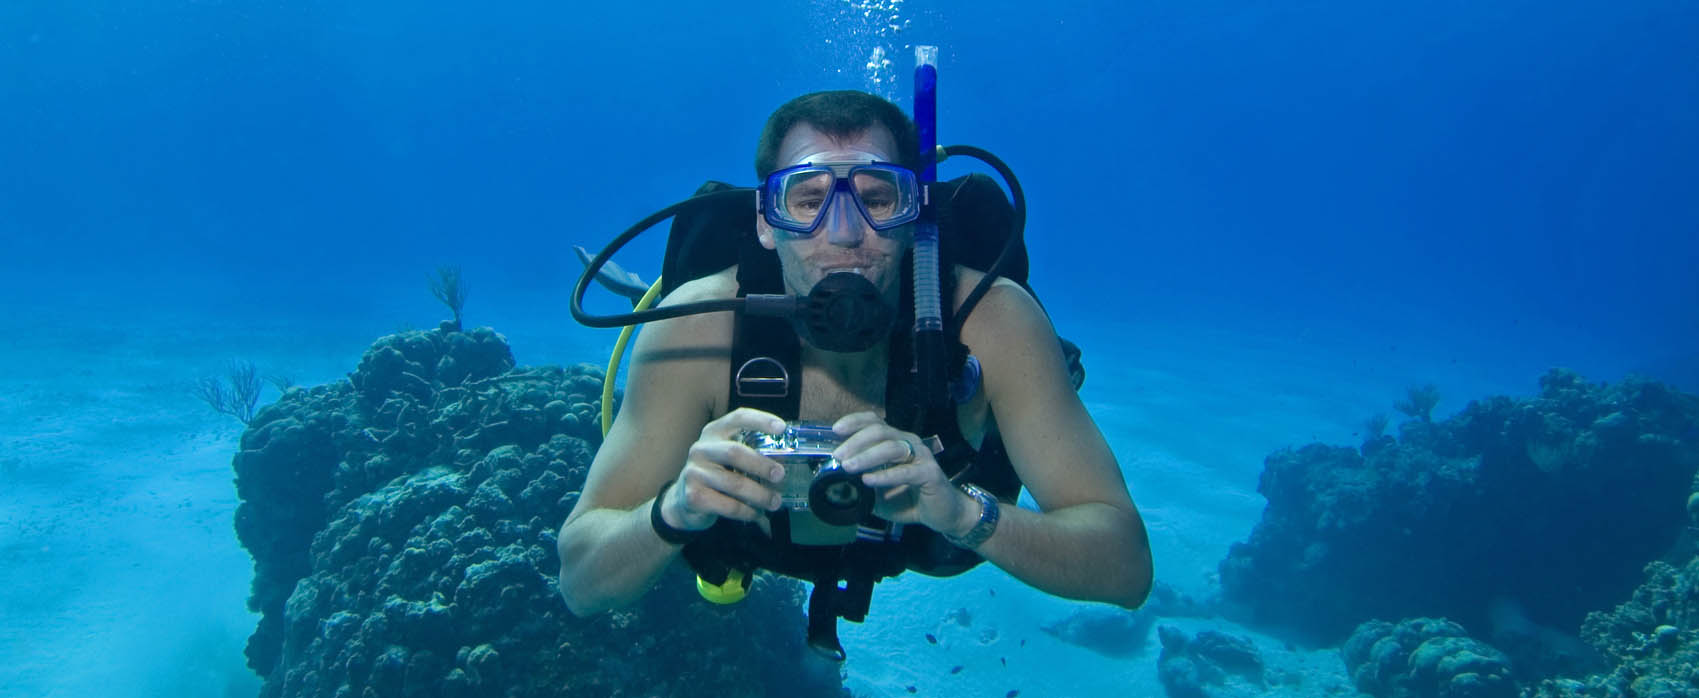 Man scuba diving in Cozumel, Mexico